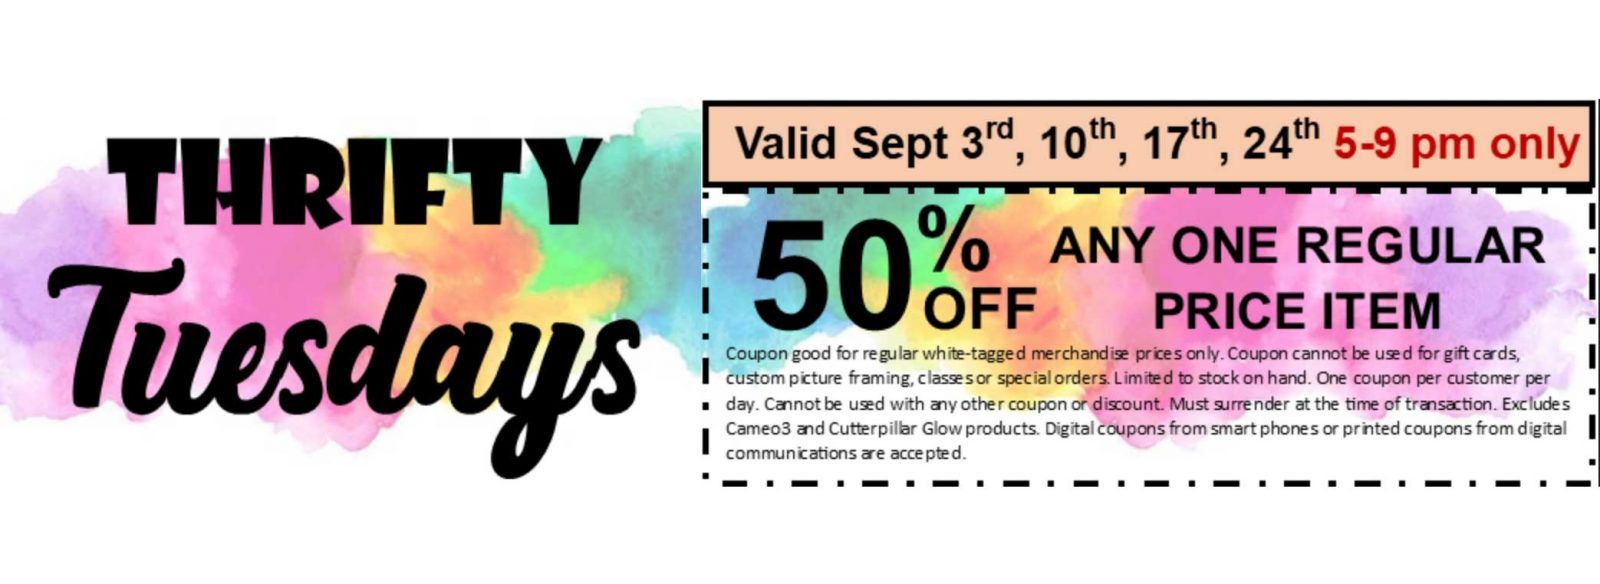 Thrifty Tuesday